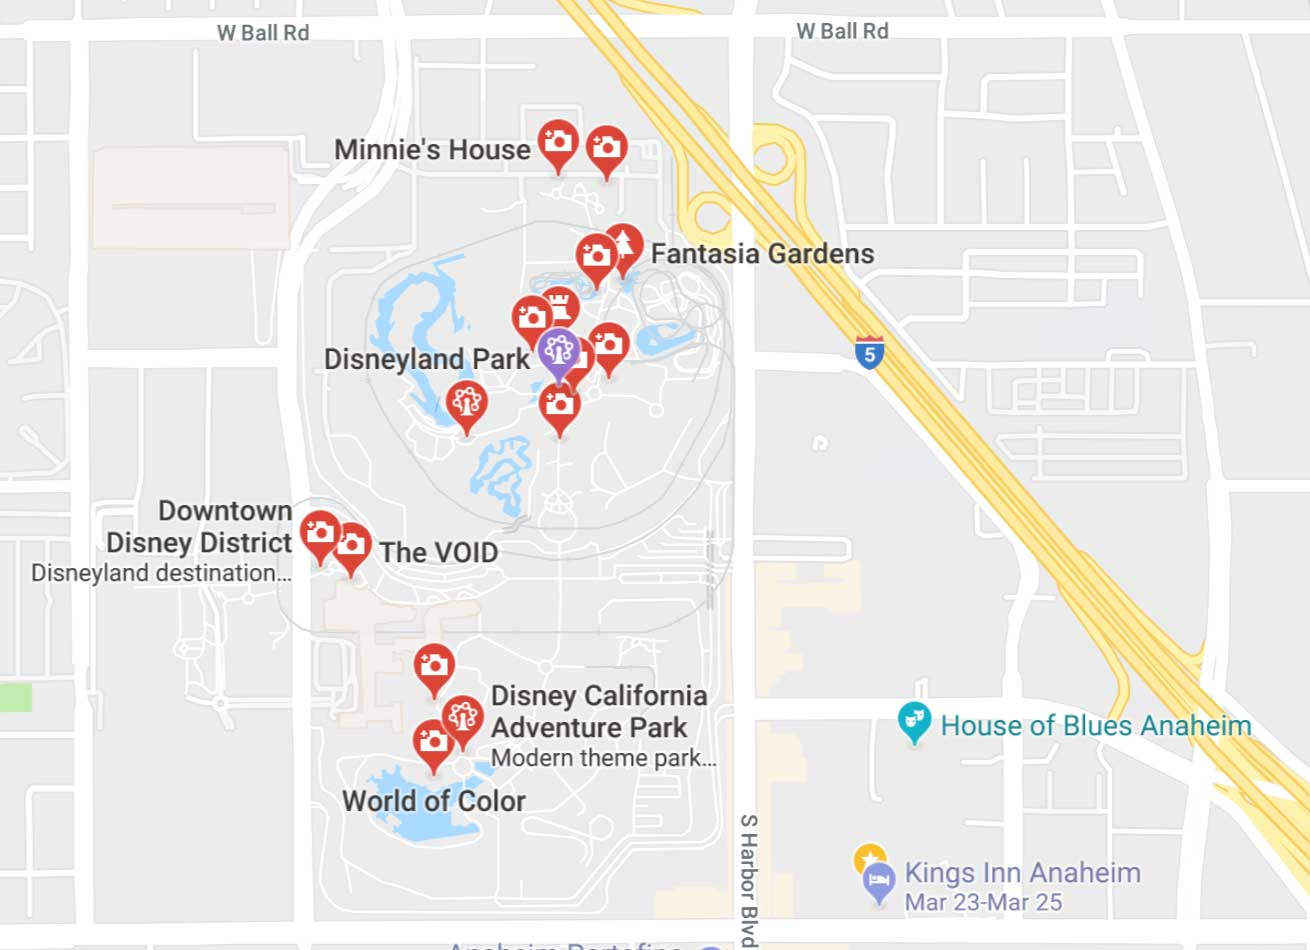 hotel-near-Disneyland®-MAP — Kings Inn Anaheim™ on map of crystal cathedral, map of orange, map of staples center, map of venice beach, map of pope valley, map of copperopolis, map of lawndale, map of thousand palms, map of east hollywood, map of willits, map of los angeles, map of el toro, map of little saigon, map of boulevard, map of fashion valley, map of downtown disney district, map of disneyland, map of leucadia, map of marin city, map of alpine meadows,